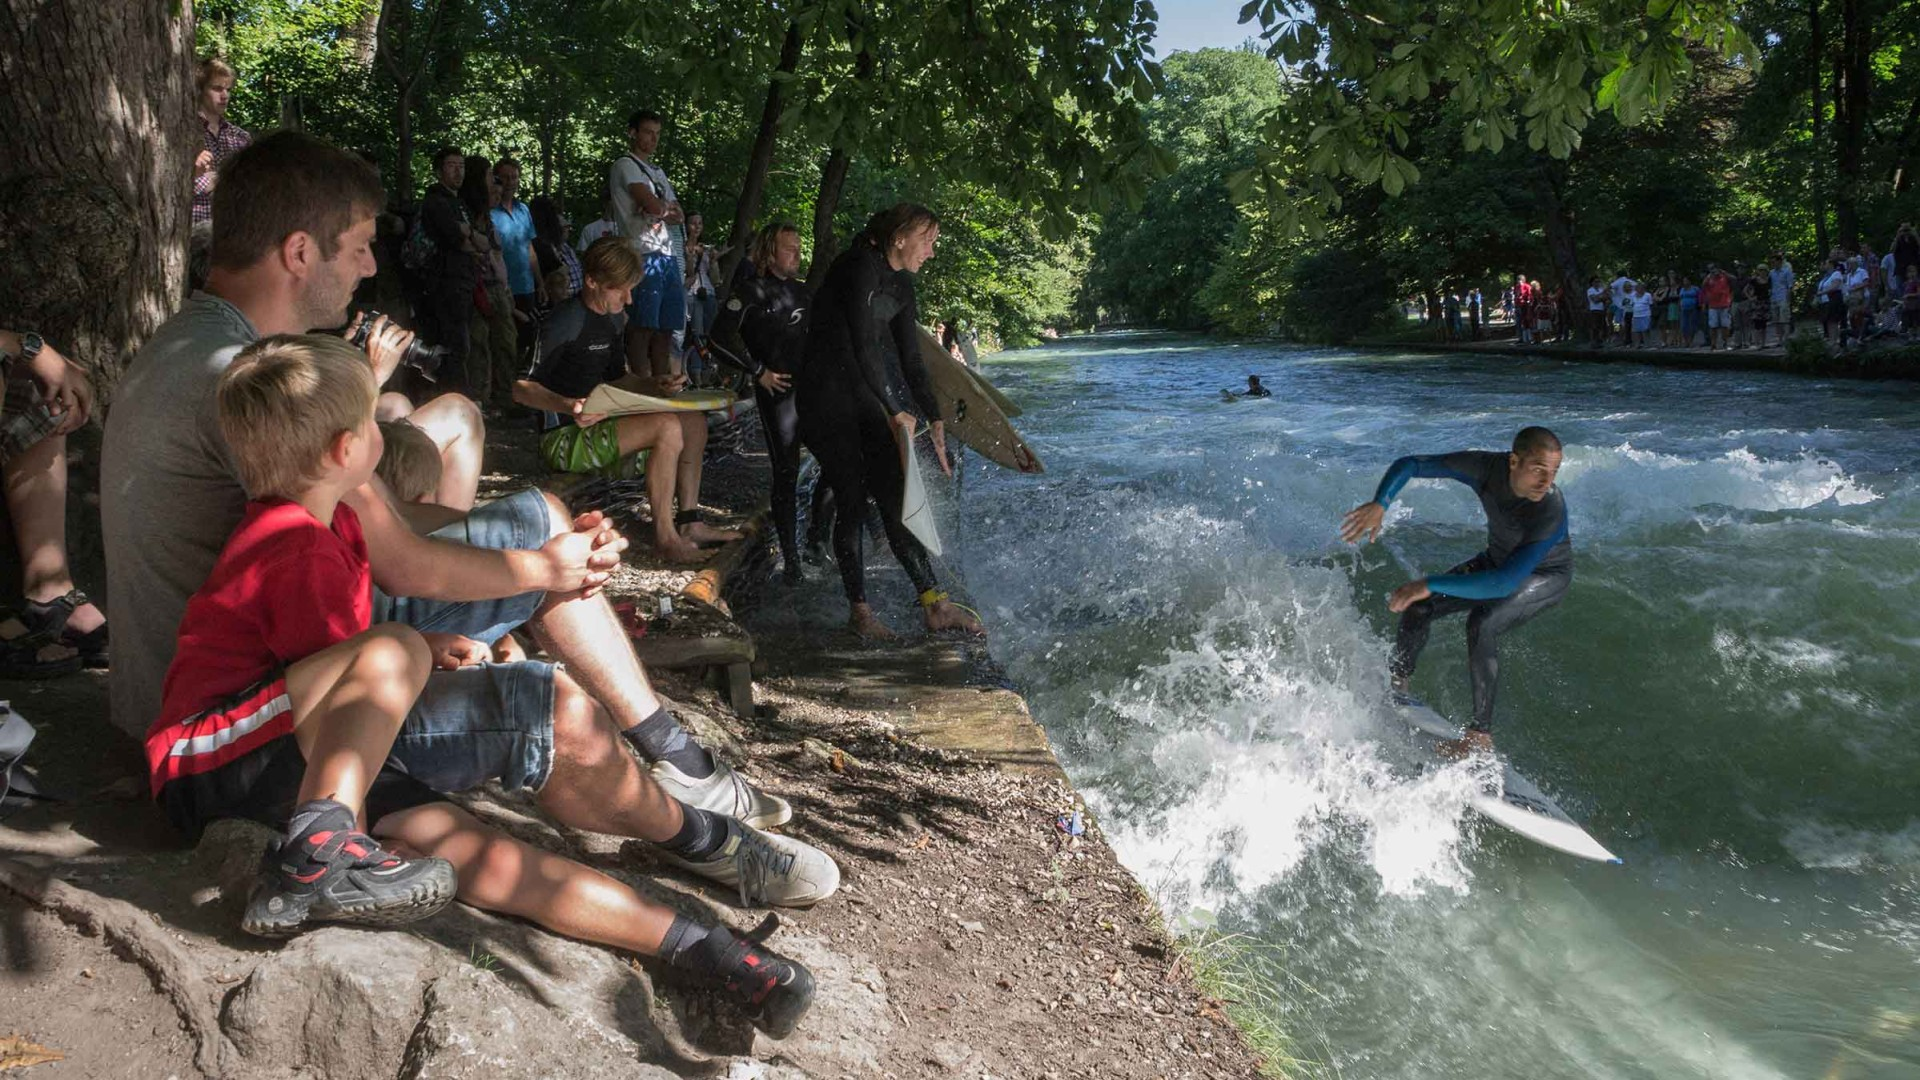 Surfing at Eisbach